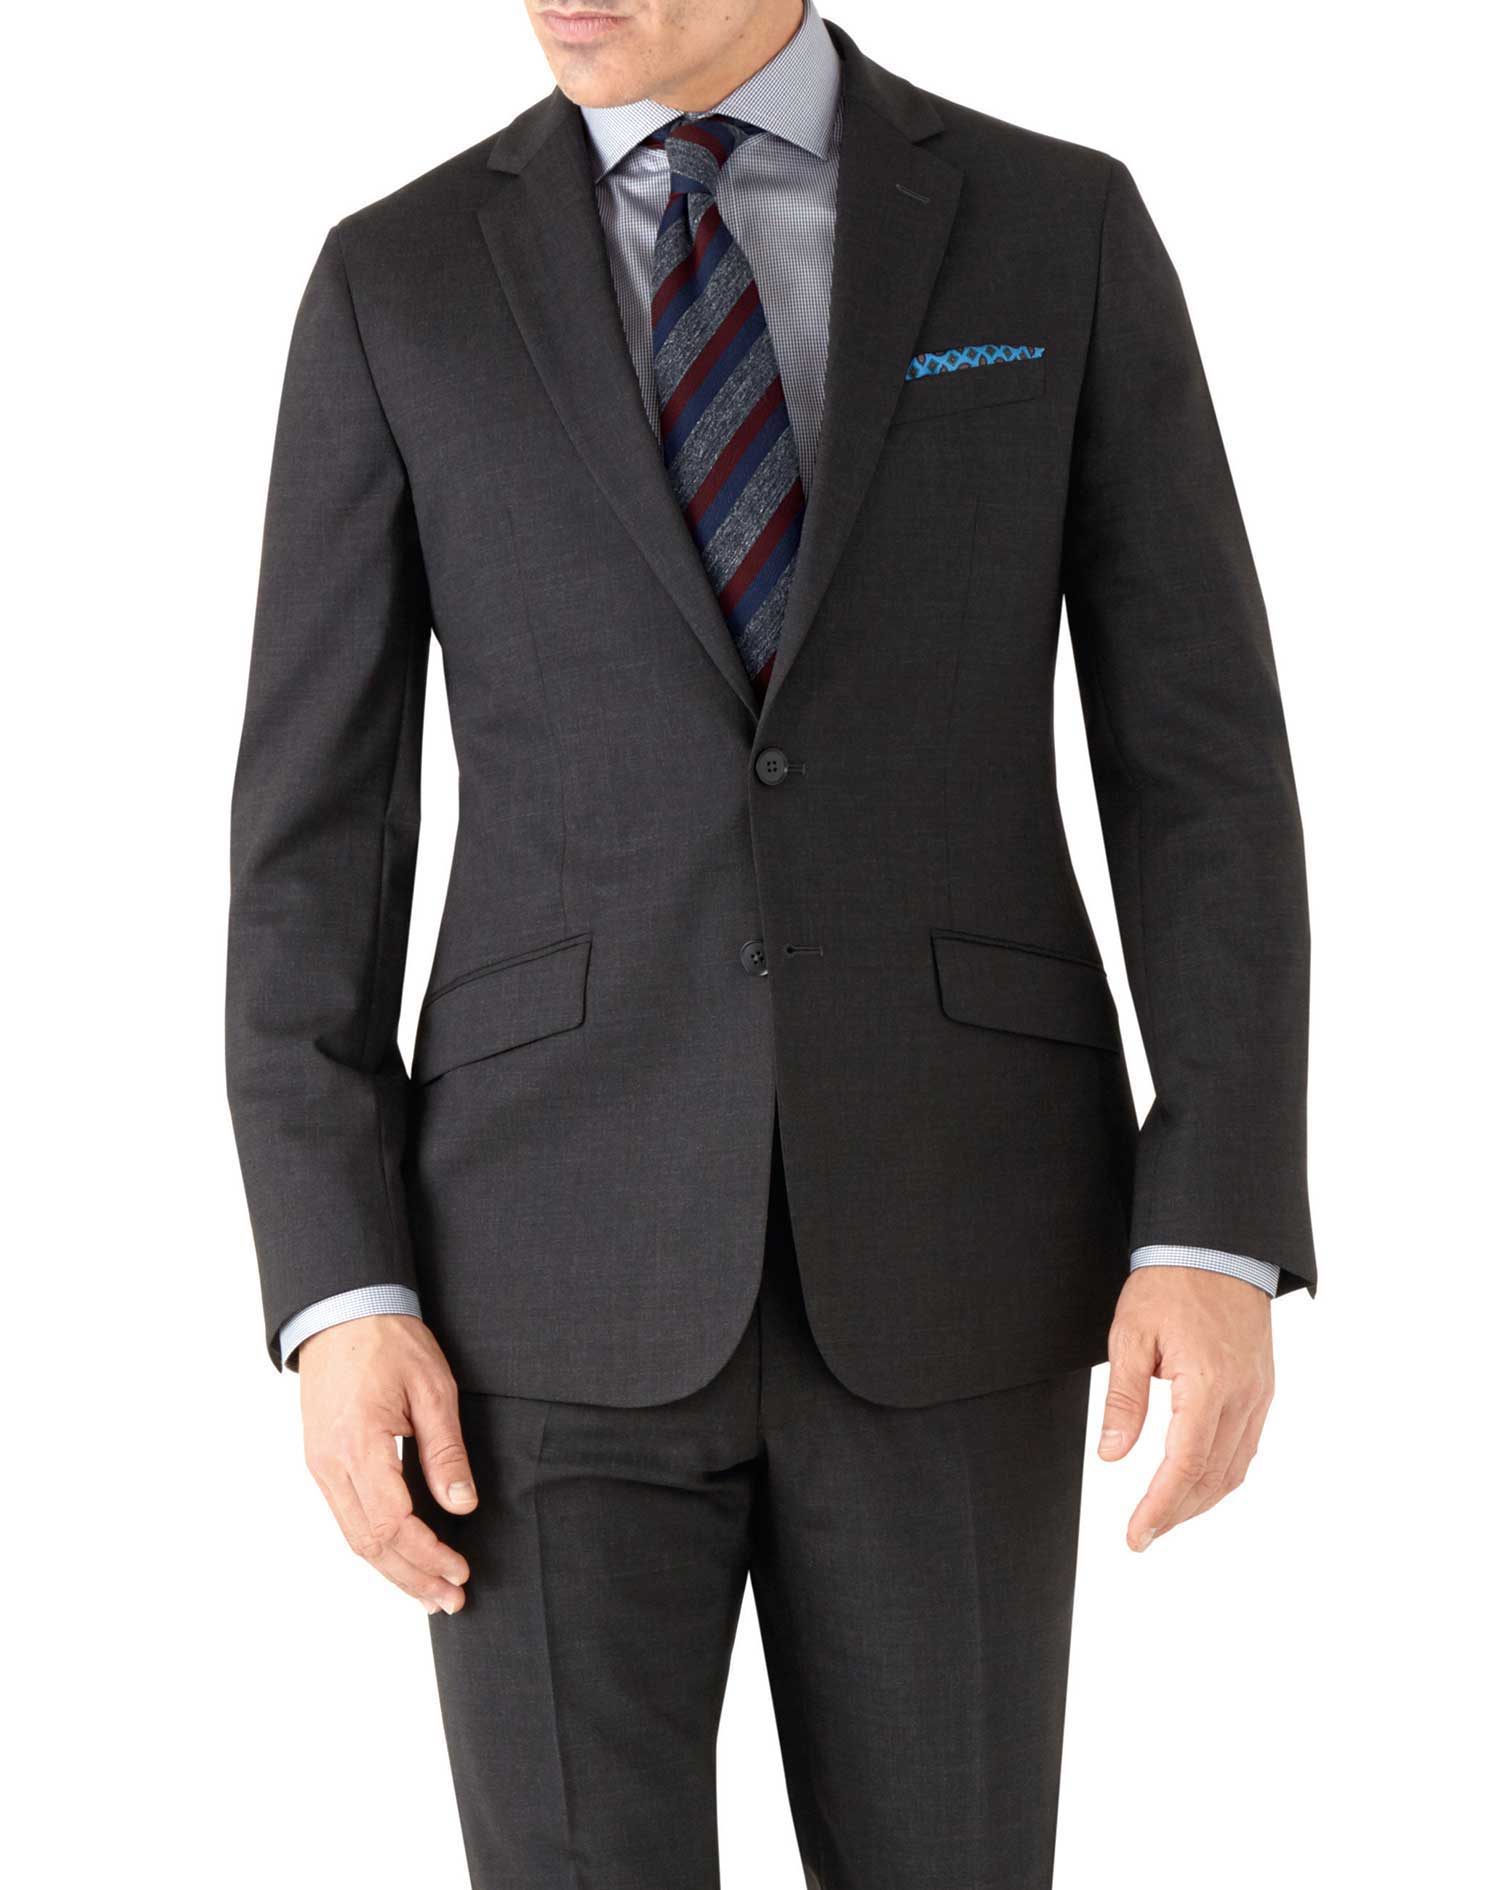 Charcoal Slim Fit Performance Suit Wool Stretch Jacket Size 44 Regular by Charles Tyrwhitt